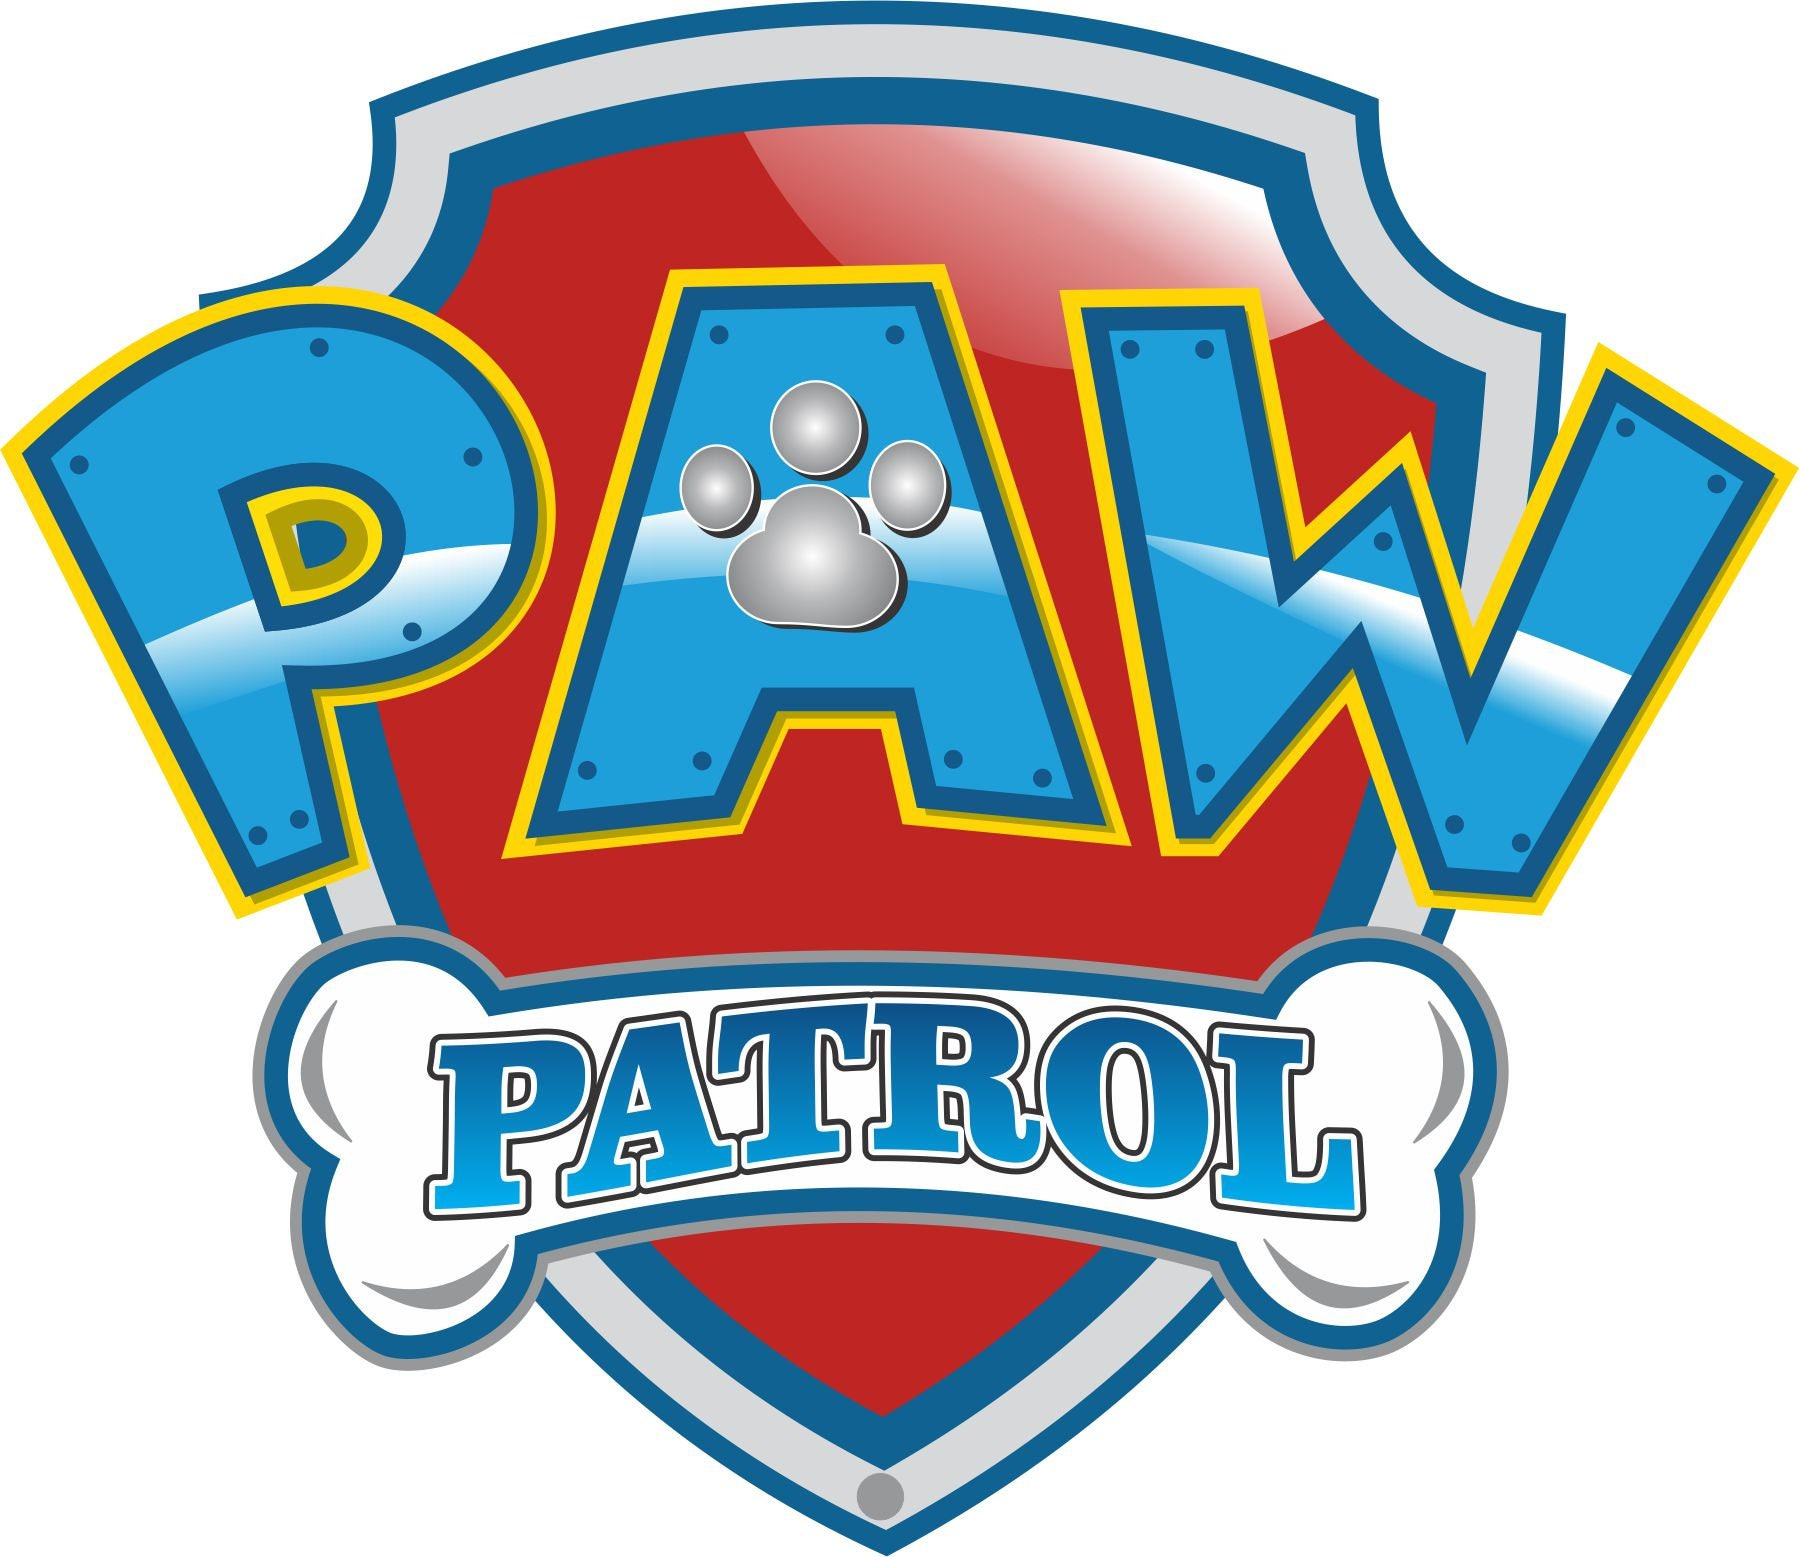 Obsessed image intended for paw patrol logo printable